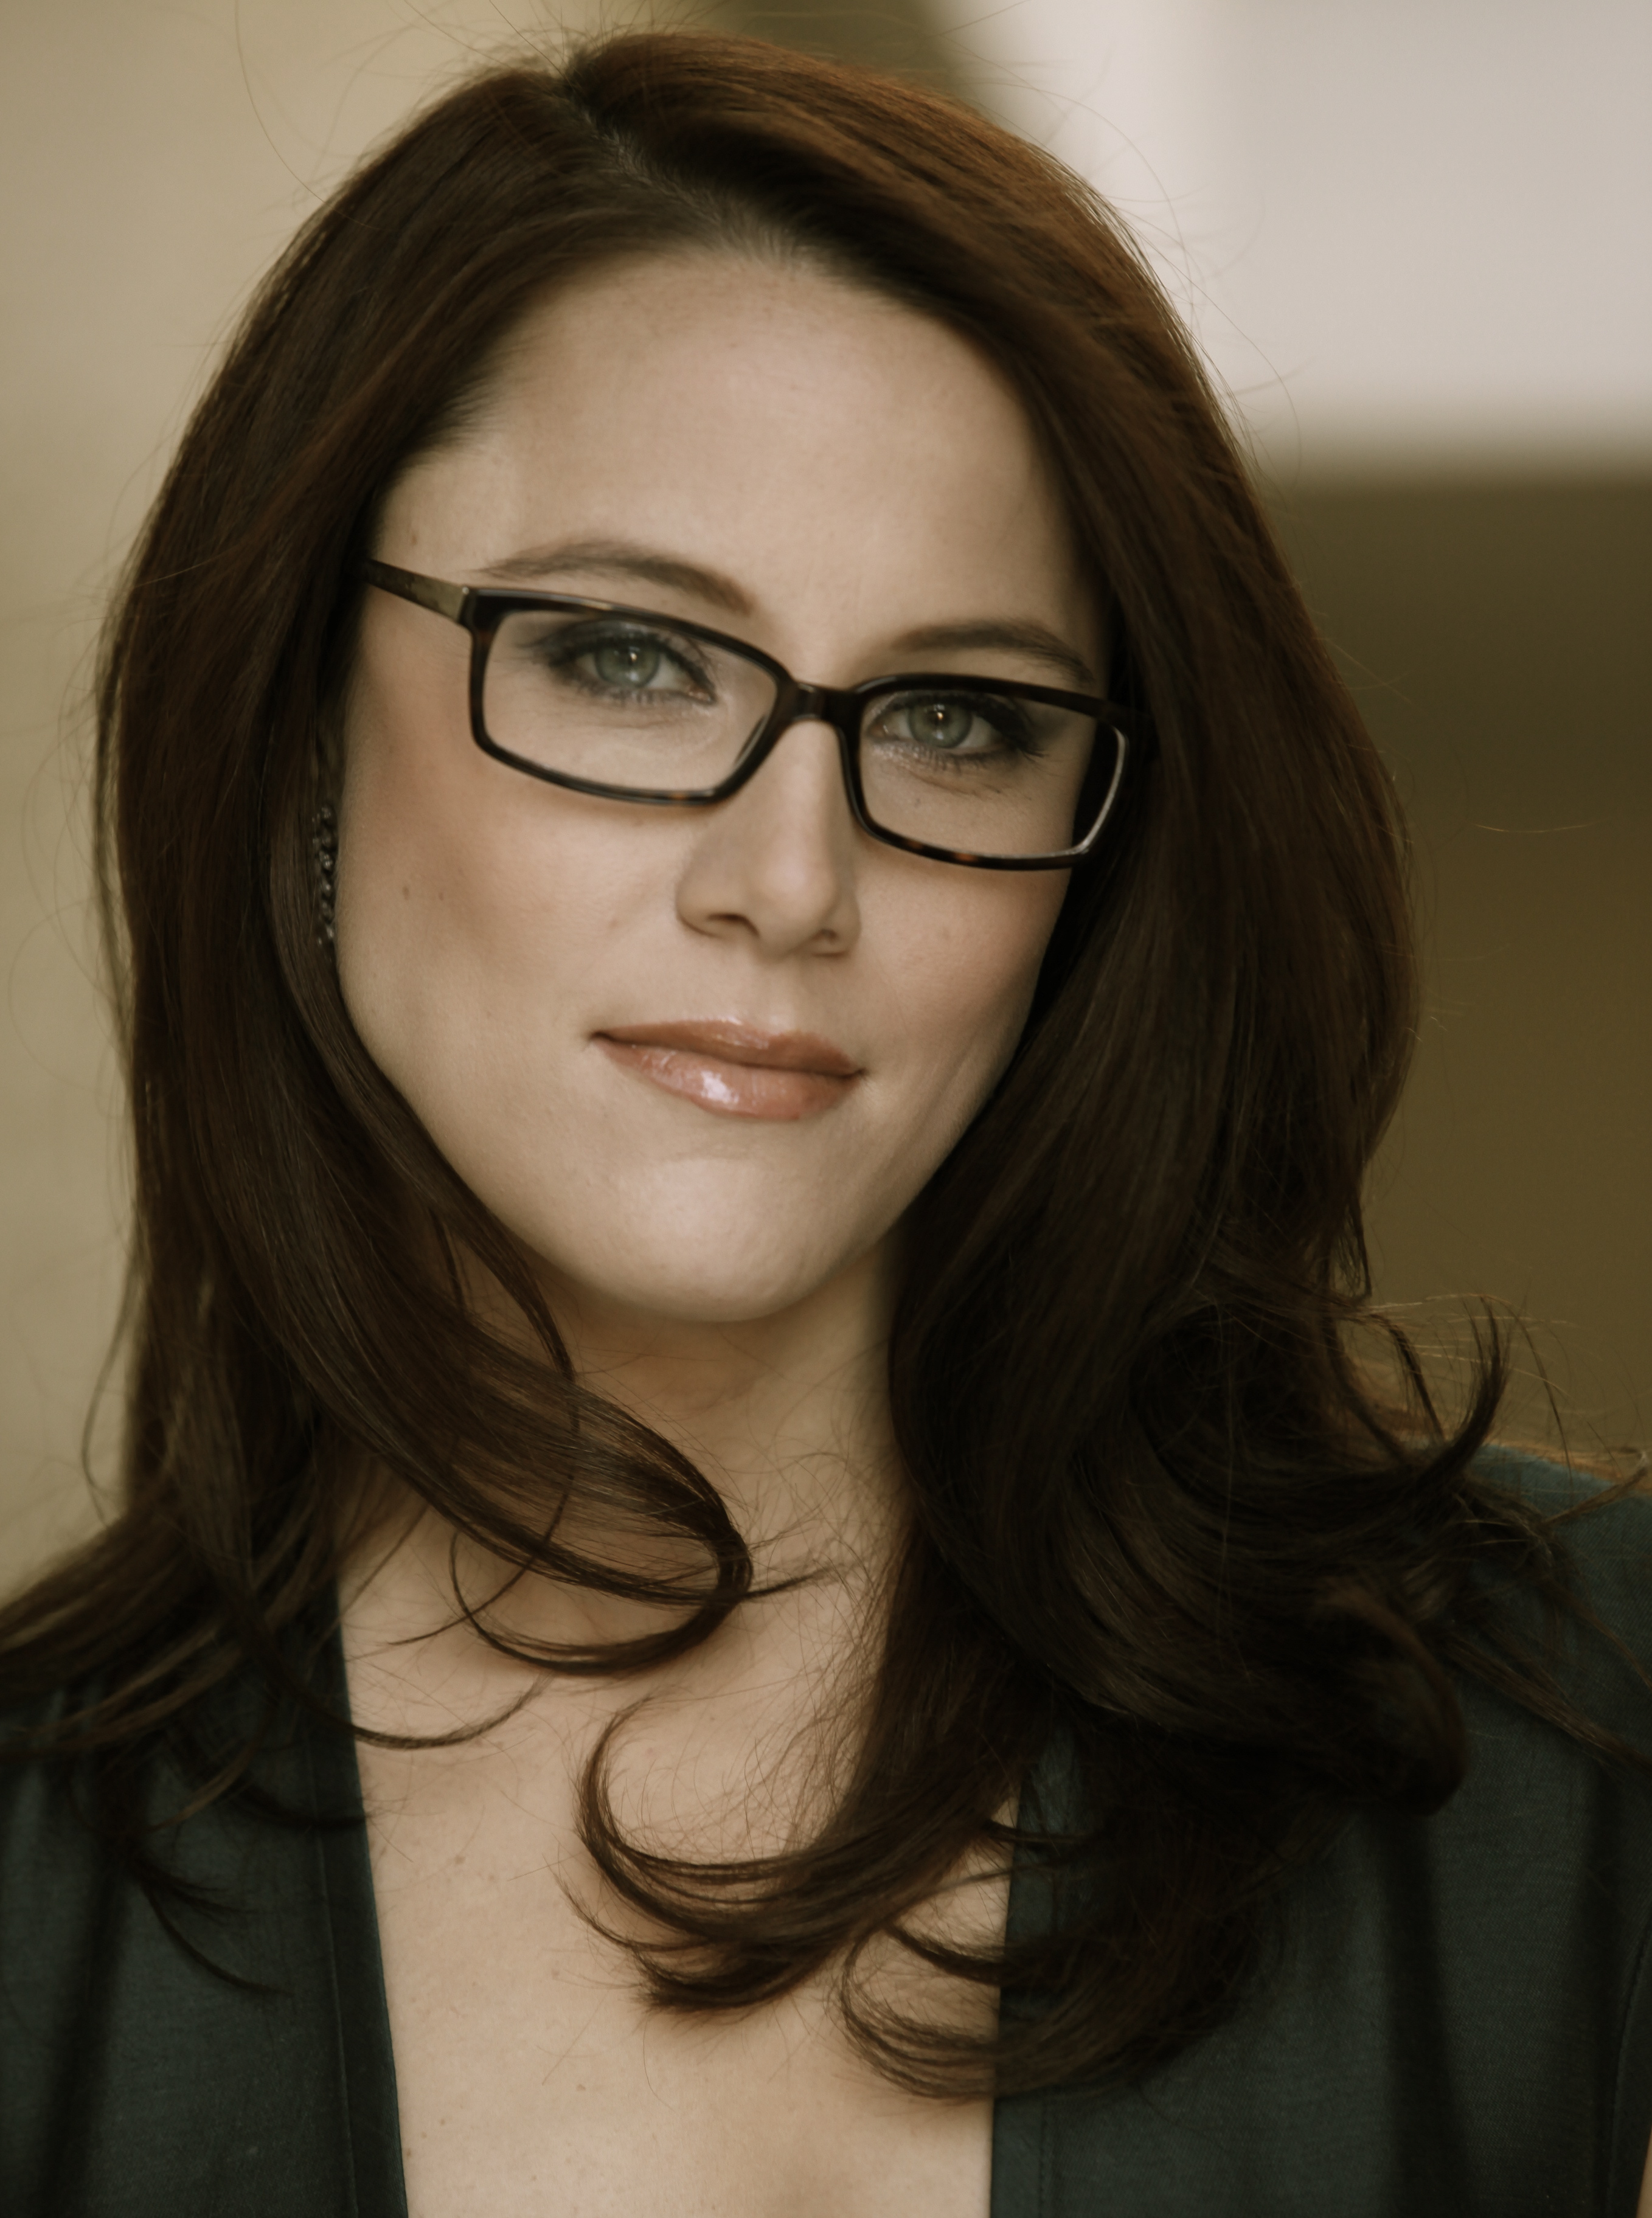 Can S. E. Cupp object to Larry Flynt's douchebaggery based on her